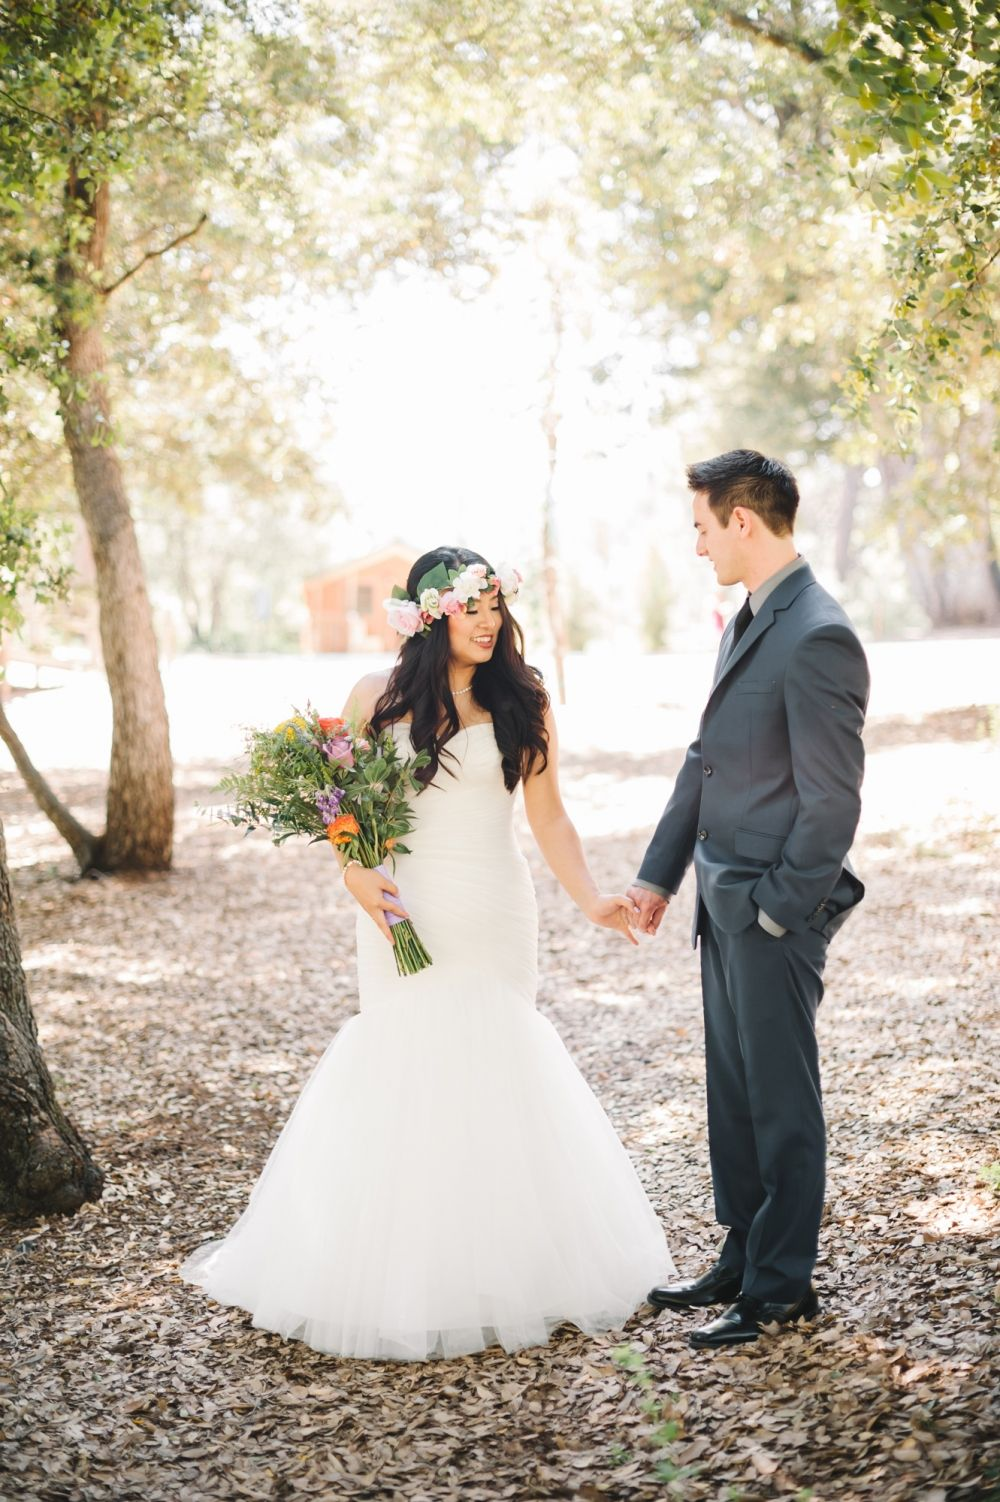 Timeless, Beautiful, Candid Wedding and Portrait Photography. Idyllwild woods wedding by New Love Photography www.NewLovePhotography.com